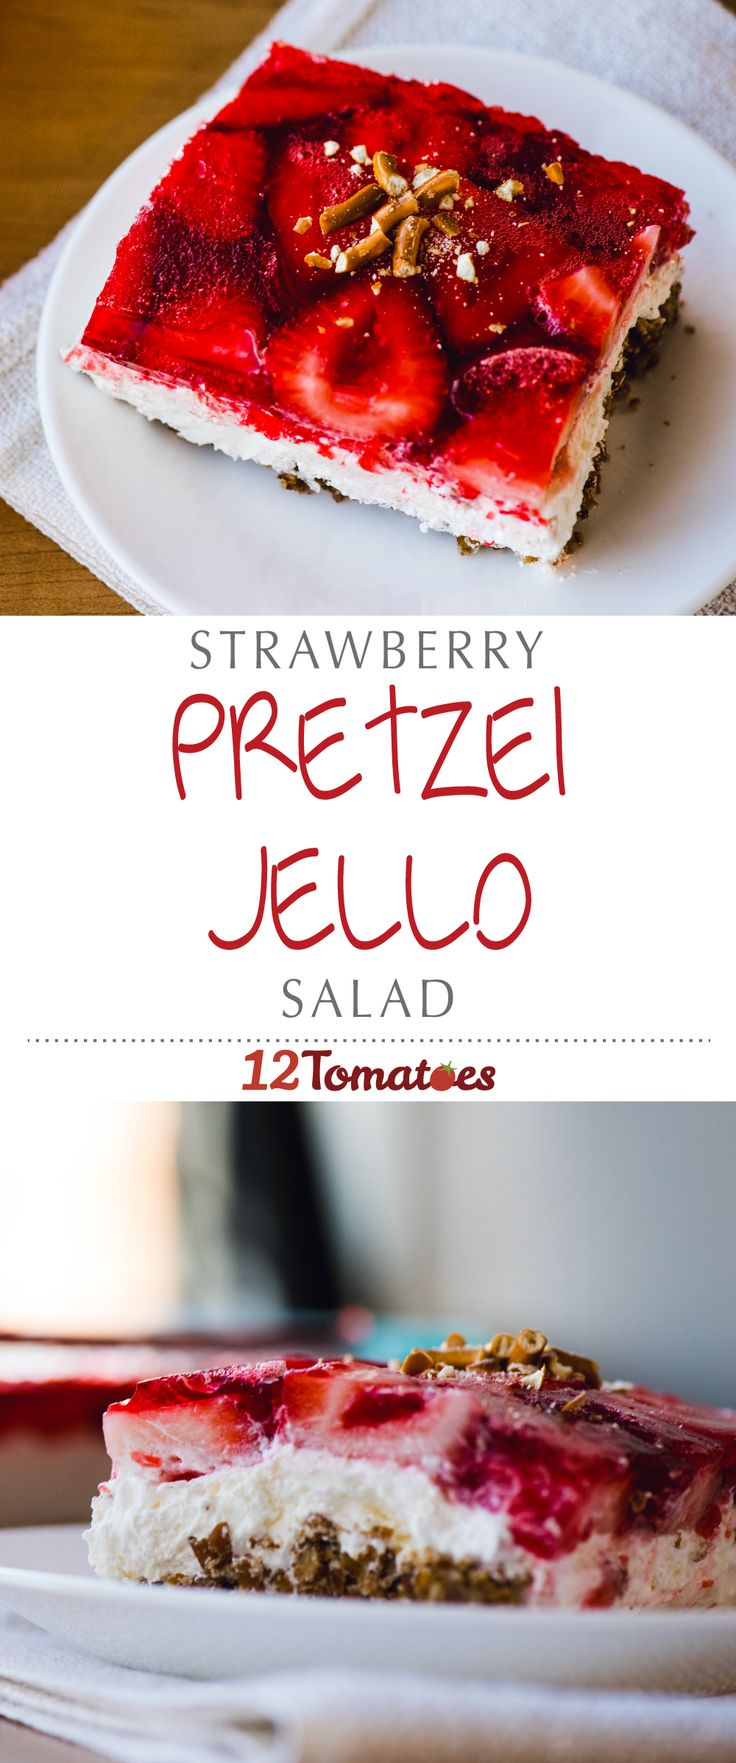 Strawberry Pretzel Jello Salad | For this 'salad' we used strawberry jello and fresh strawberries, a thick layer of sweet cream cheese, and a pretzel crust, for just a little salty crunch that pairs perfectly with the creamy and fruity layers above.